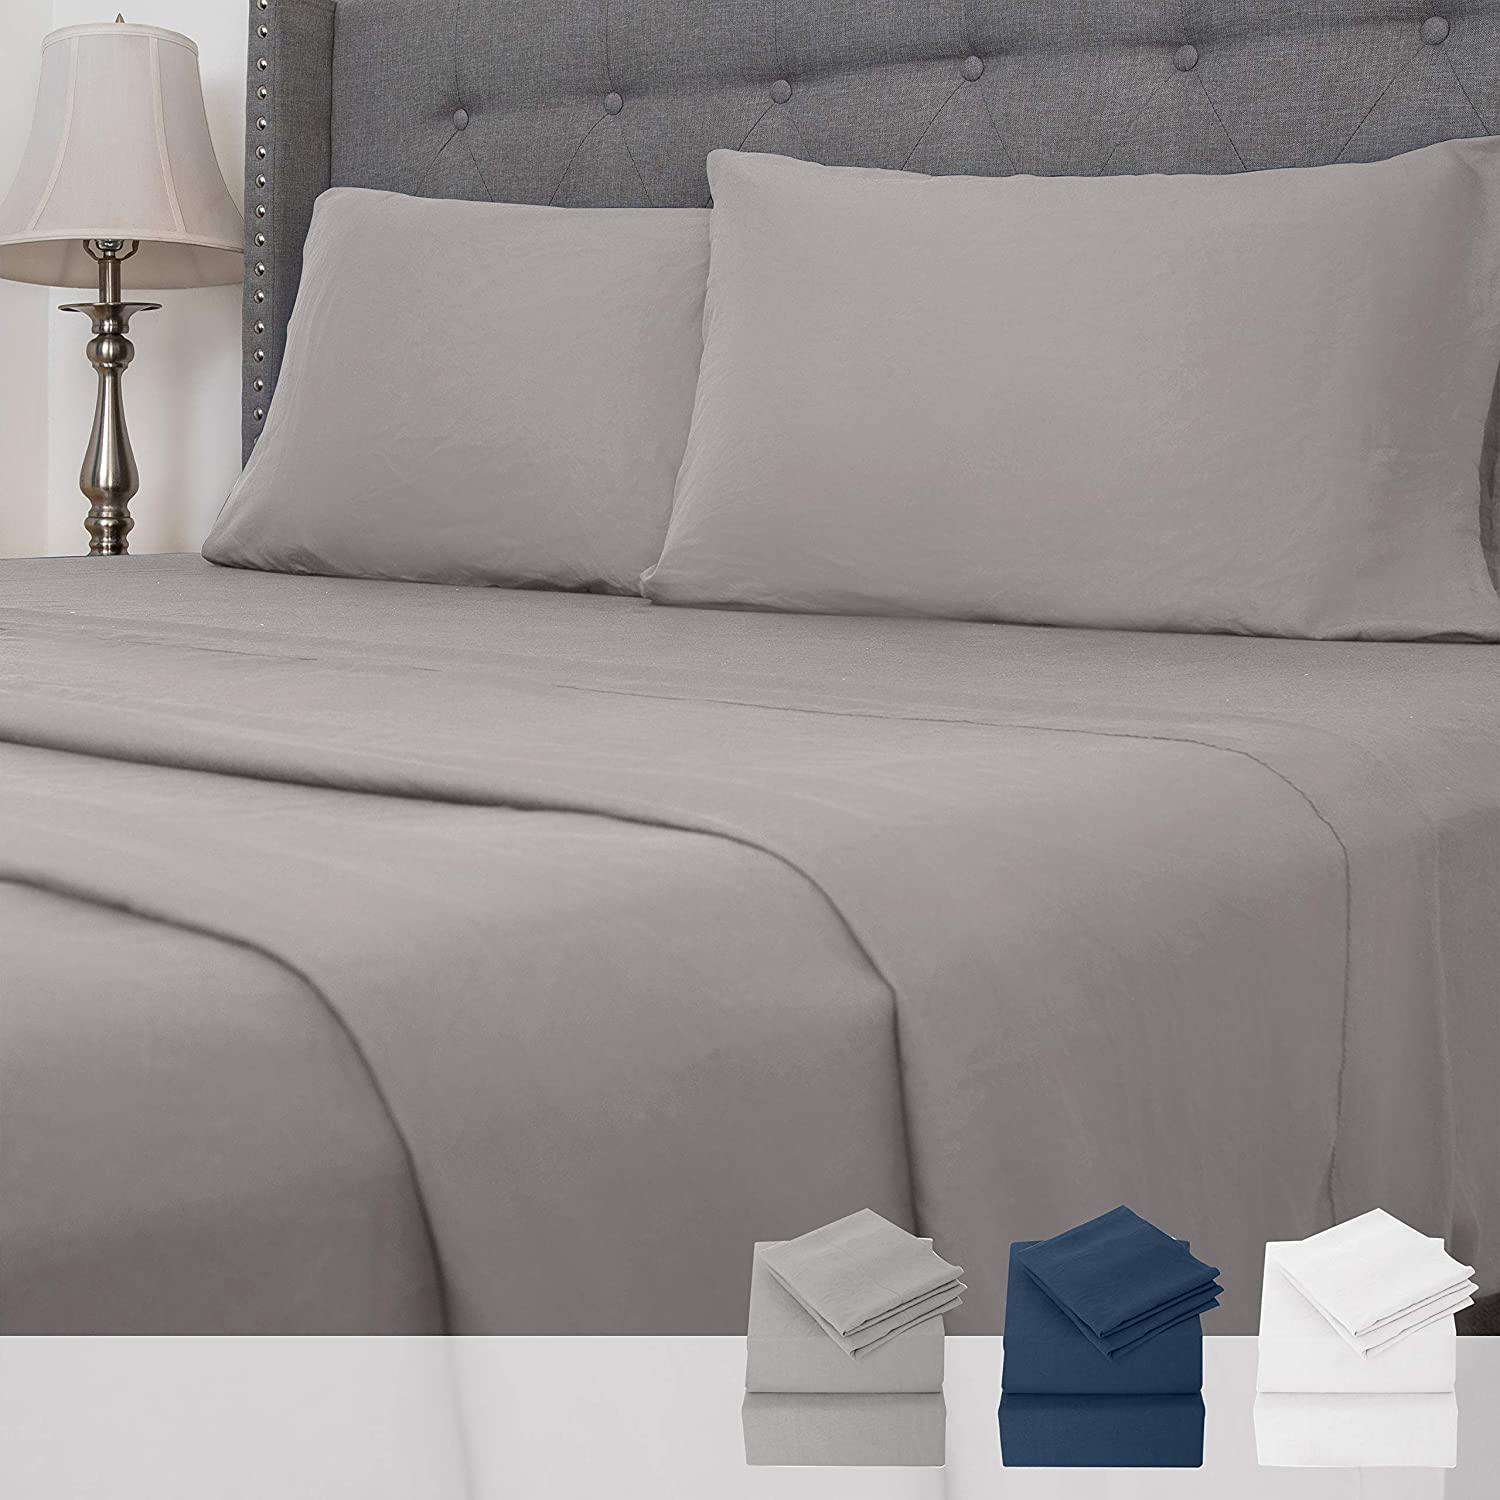 Boston Traders 4 Piece Microfiber Bed Sheets Set - Wrinkle Fade and Stain Resistant Hypoallergenic Bed Sheets (Grey, Queen)